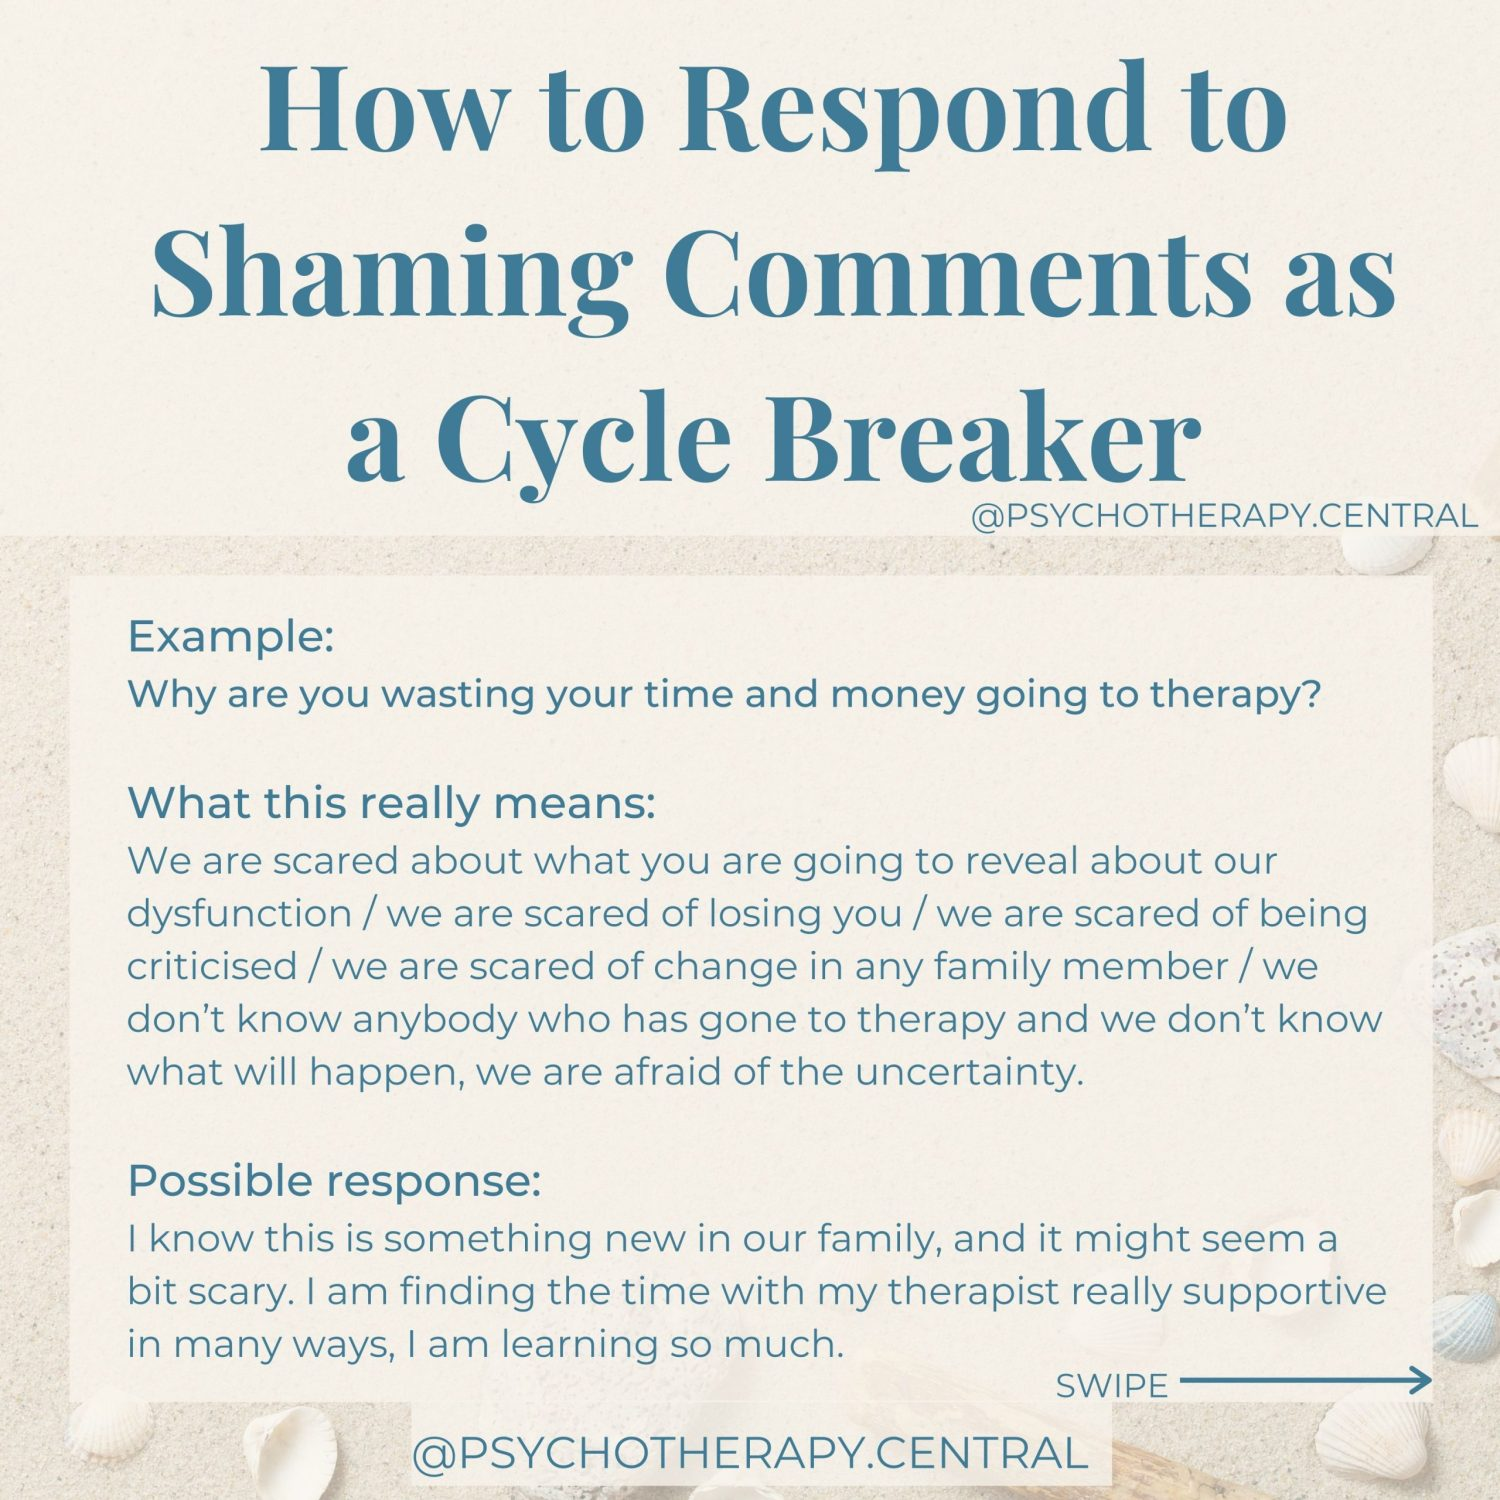 How to Respond to Shaming Comments as a Cycle Breaker